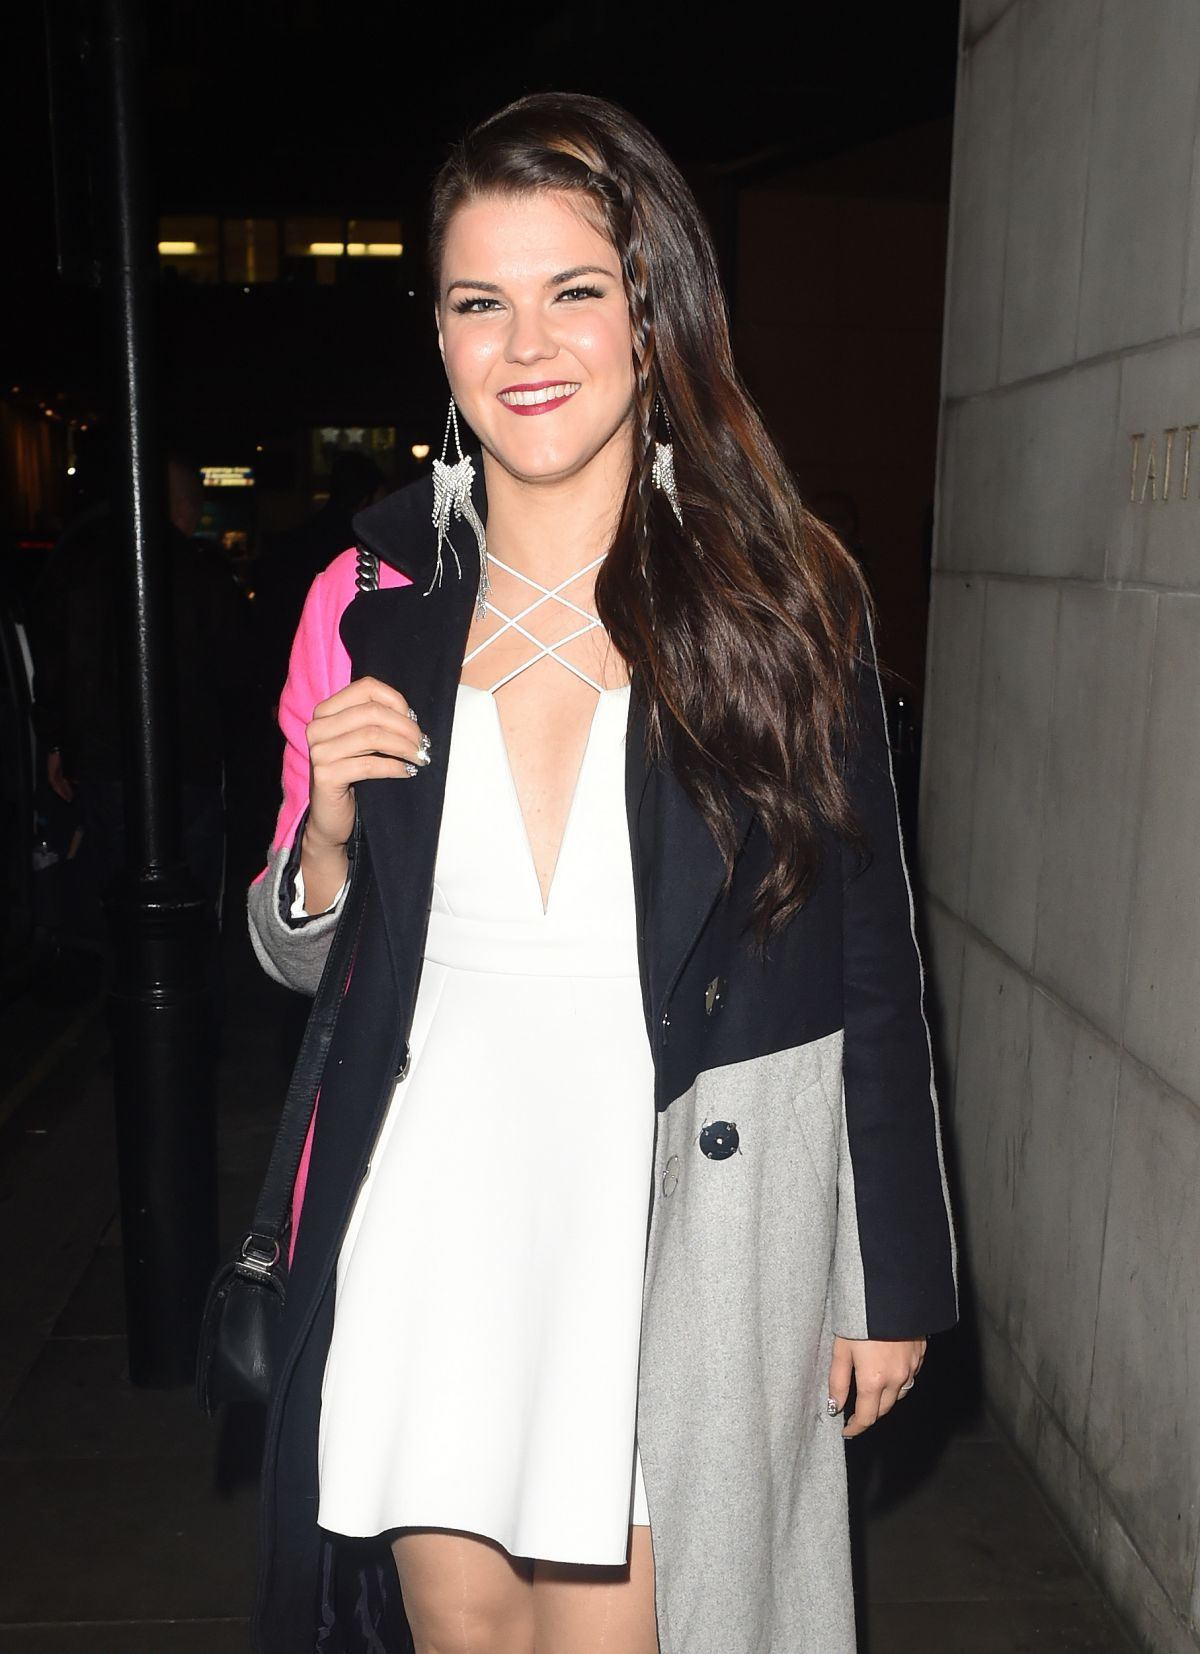 SAARA AALTO at Zuma Restaurant in London